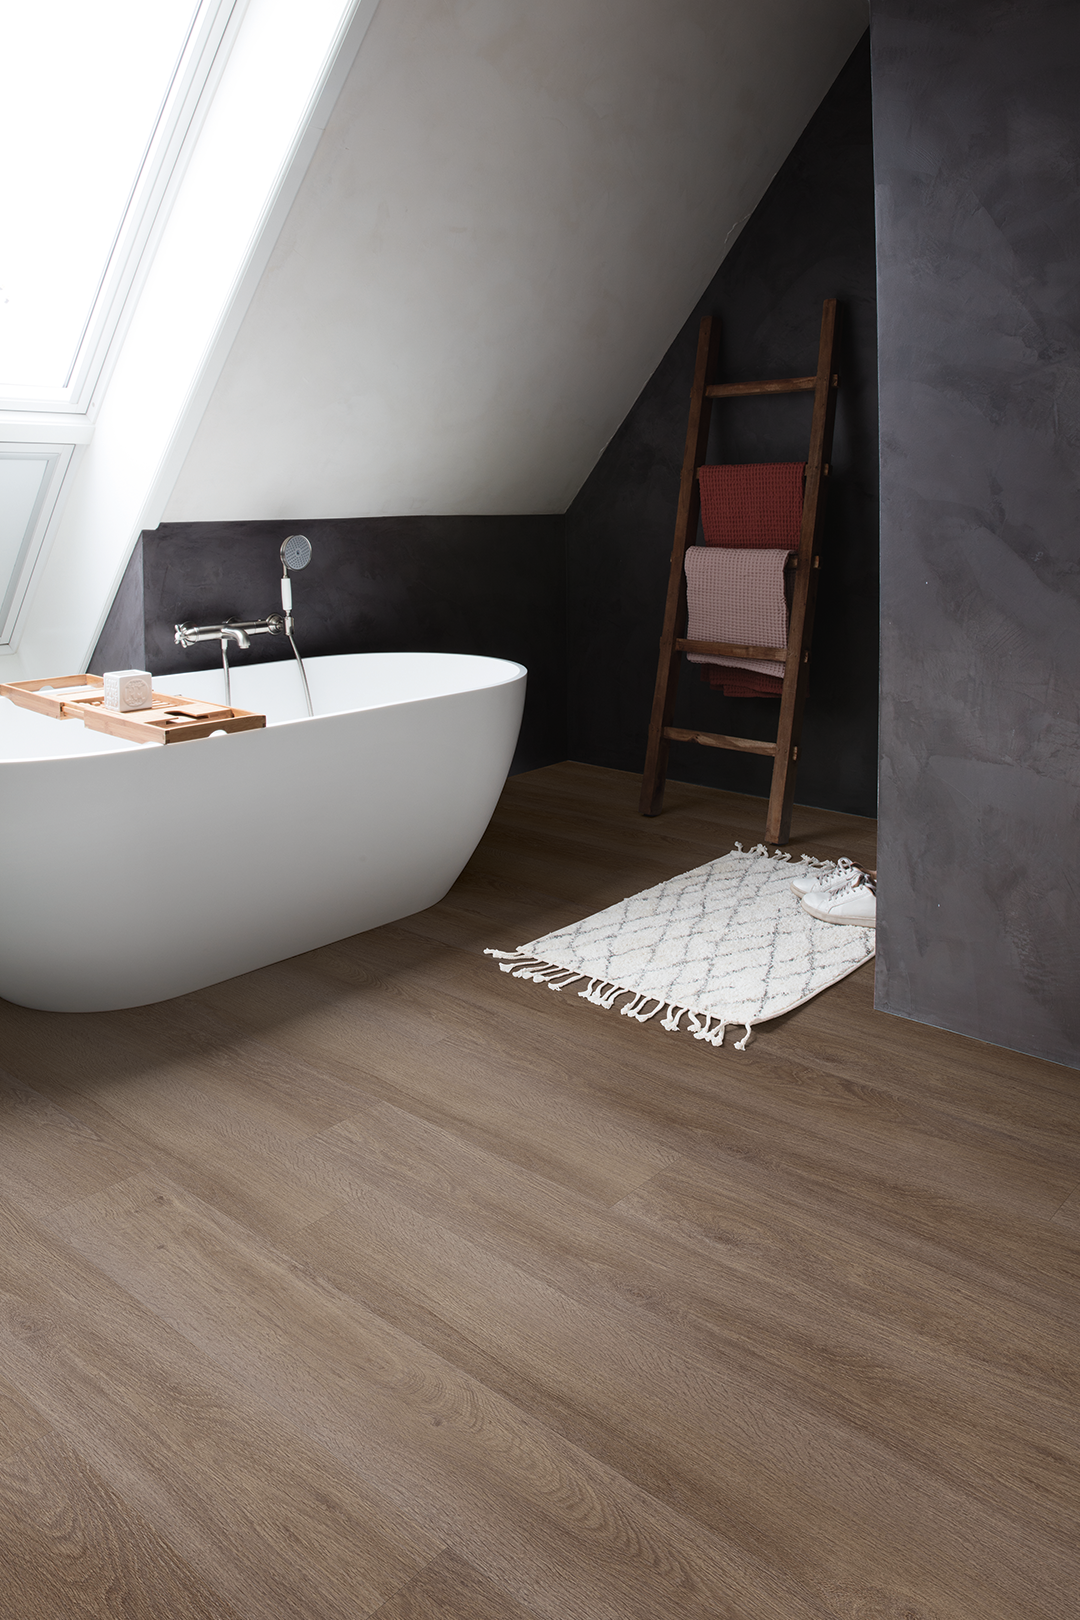 Vinyl Flooring Has A Couple Of Unique Qualities That Make It An Exceptionally Good Choice For Your Bat Bathroom Flooring Vinyl Flooring Bathroom Vinyl Flooring